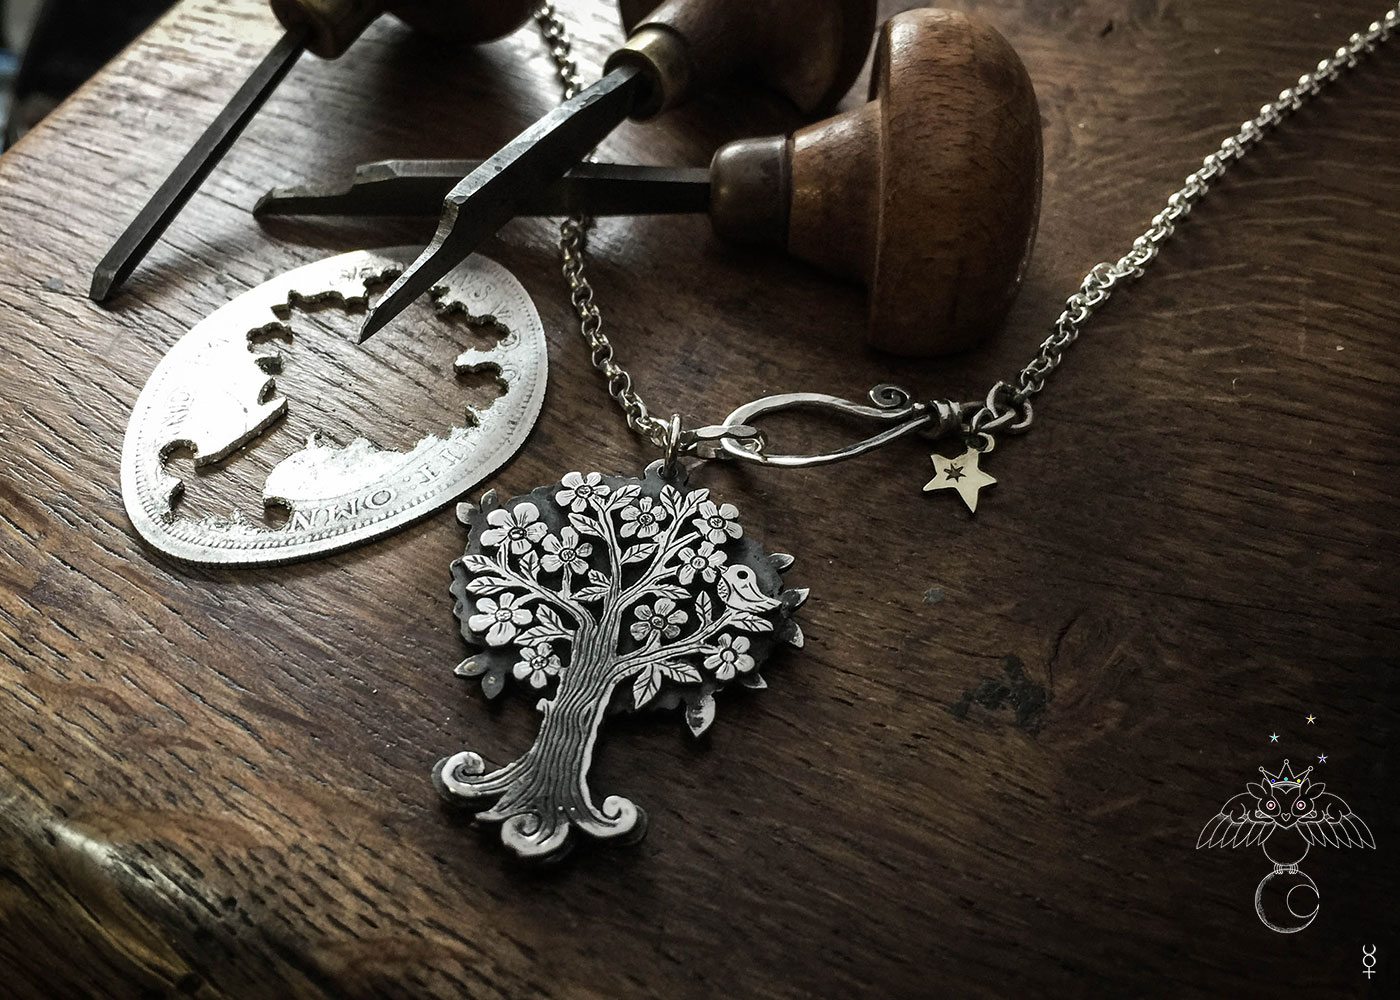 Handmade and upcycled Victorian silver coin magical nature Tree necklace